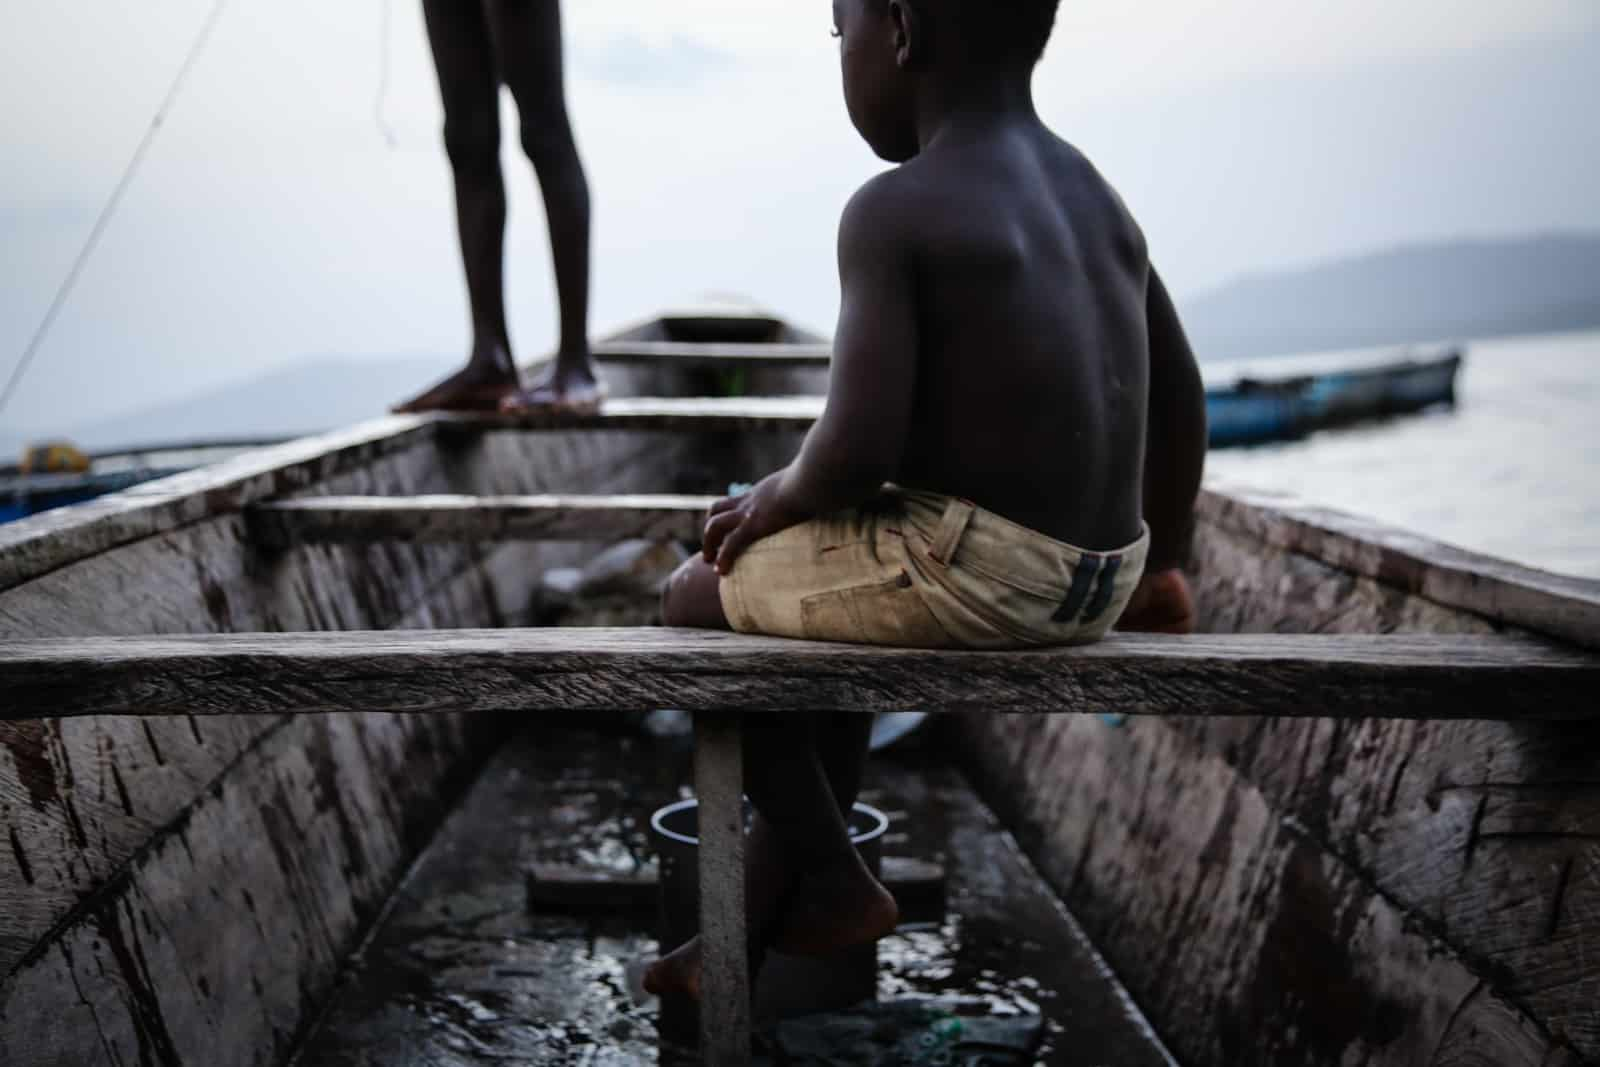 A young West African child sits in a wooden boat.